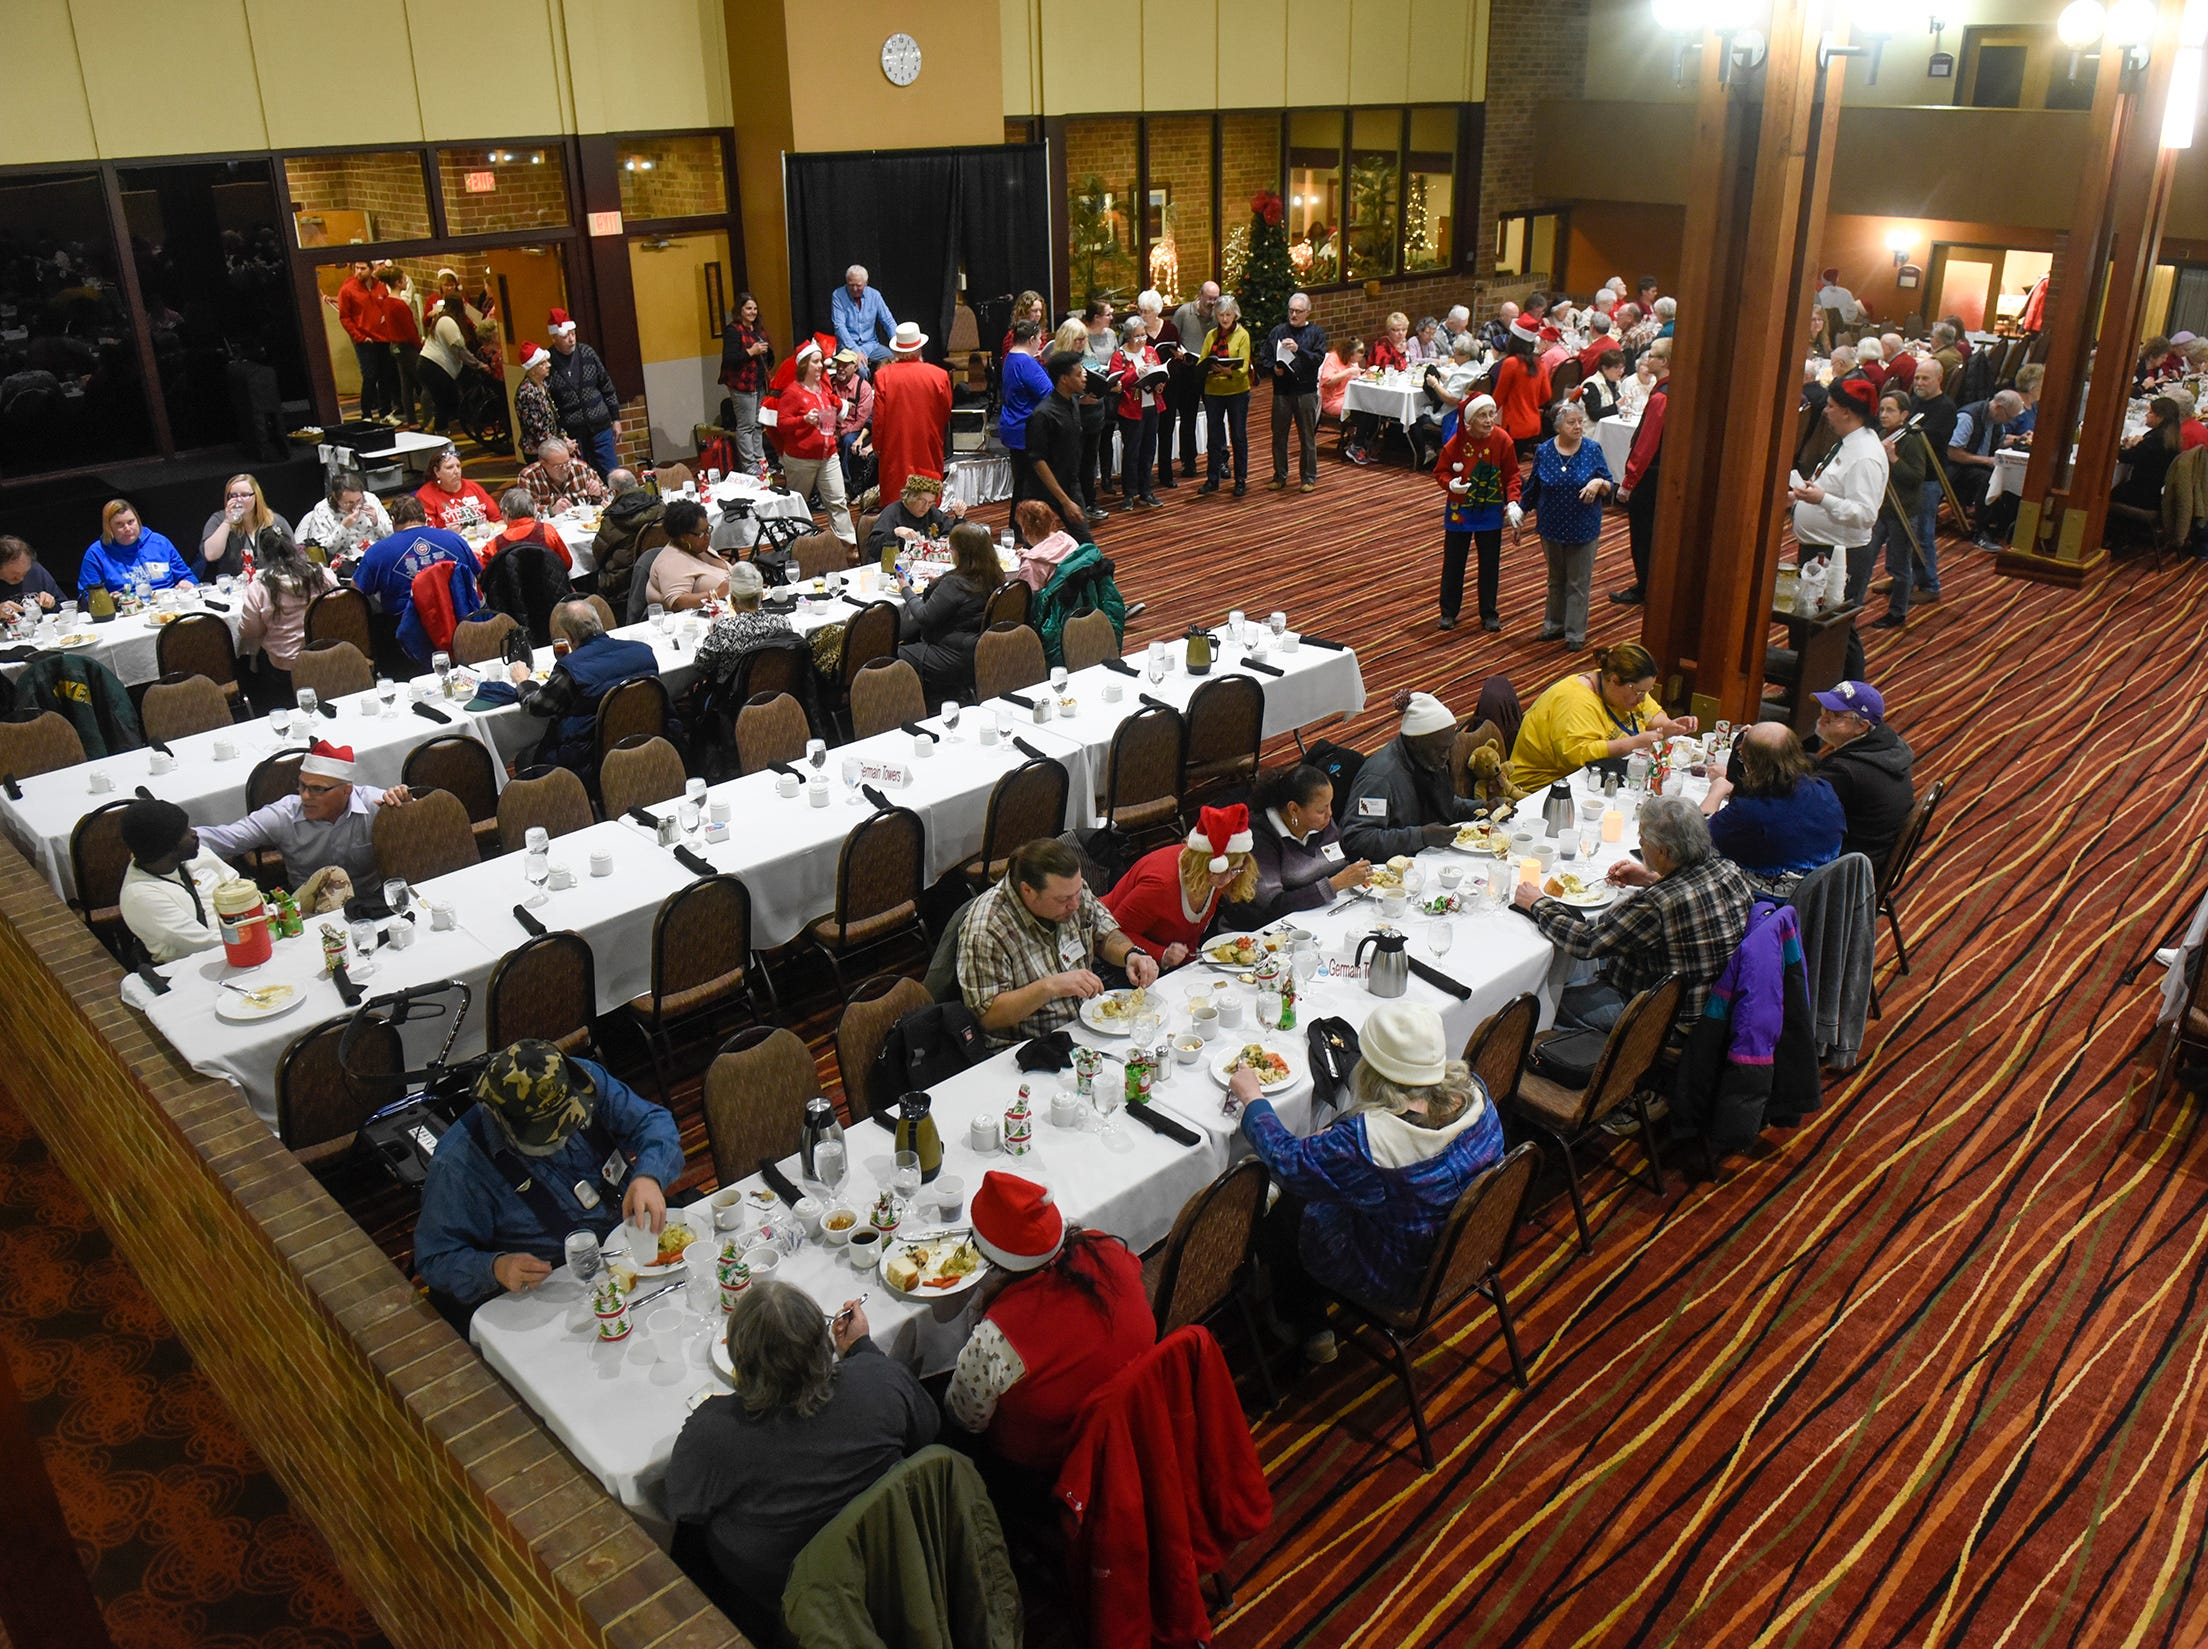 Two large eating spaces were filled for the Dinner with Santa event Monday, Dec. 17, in St. Cloud.